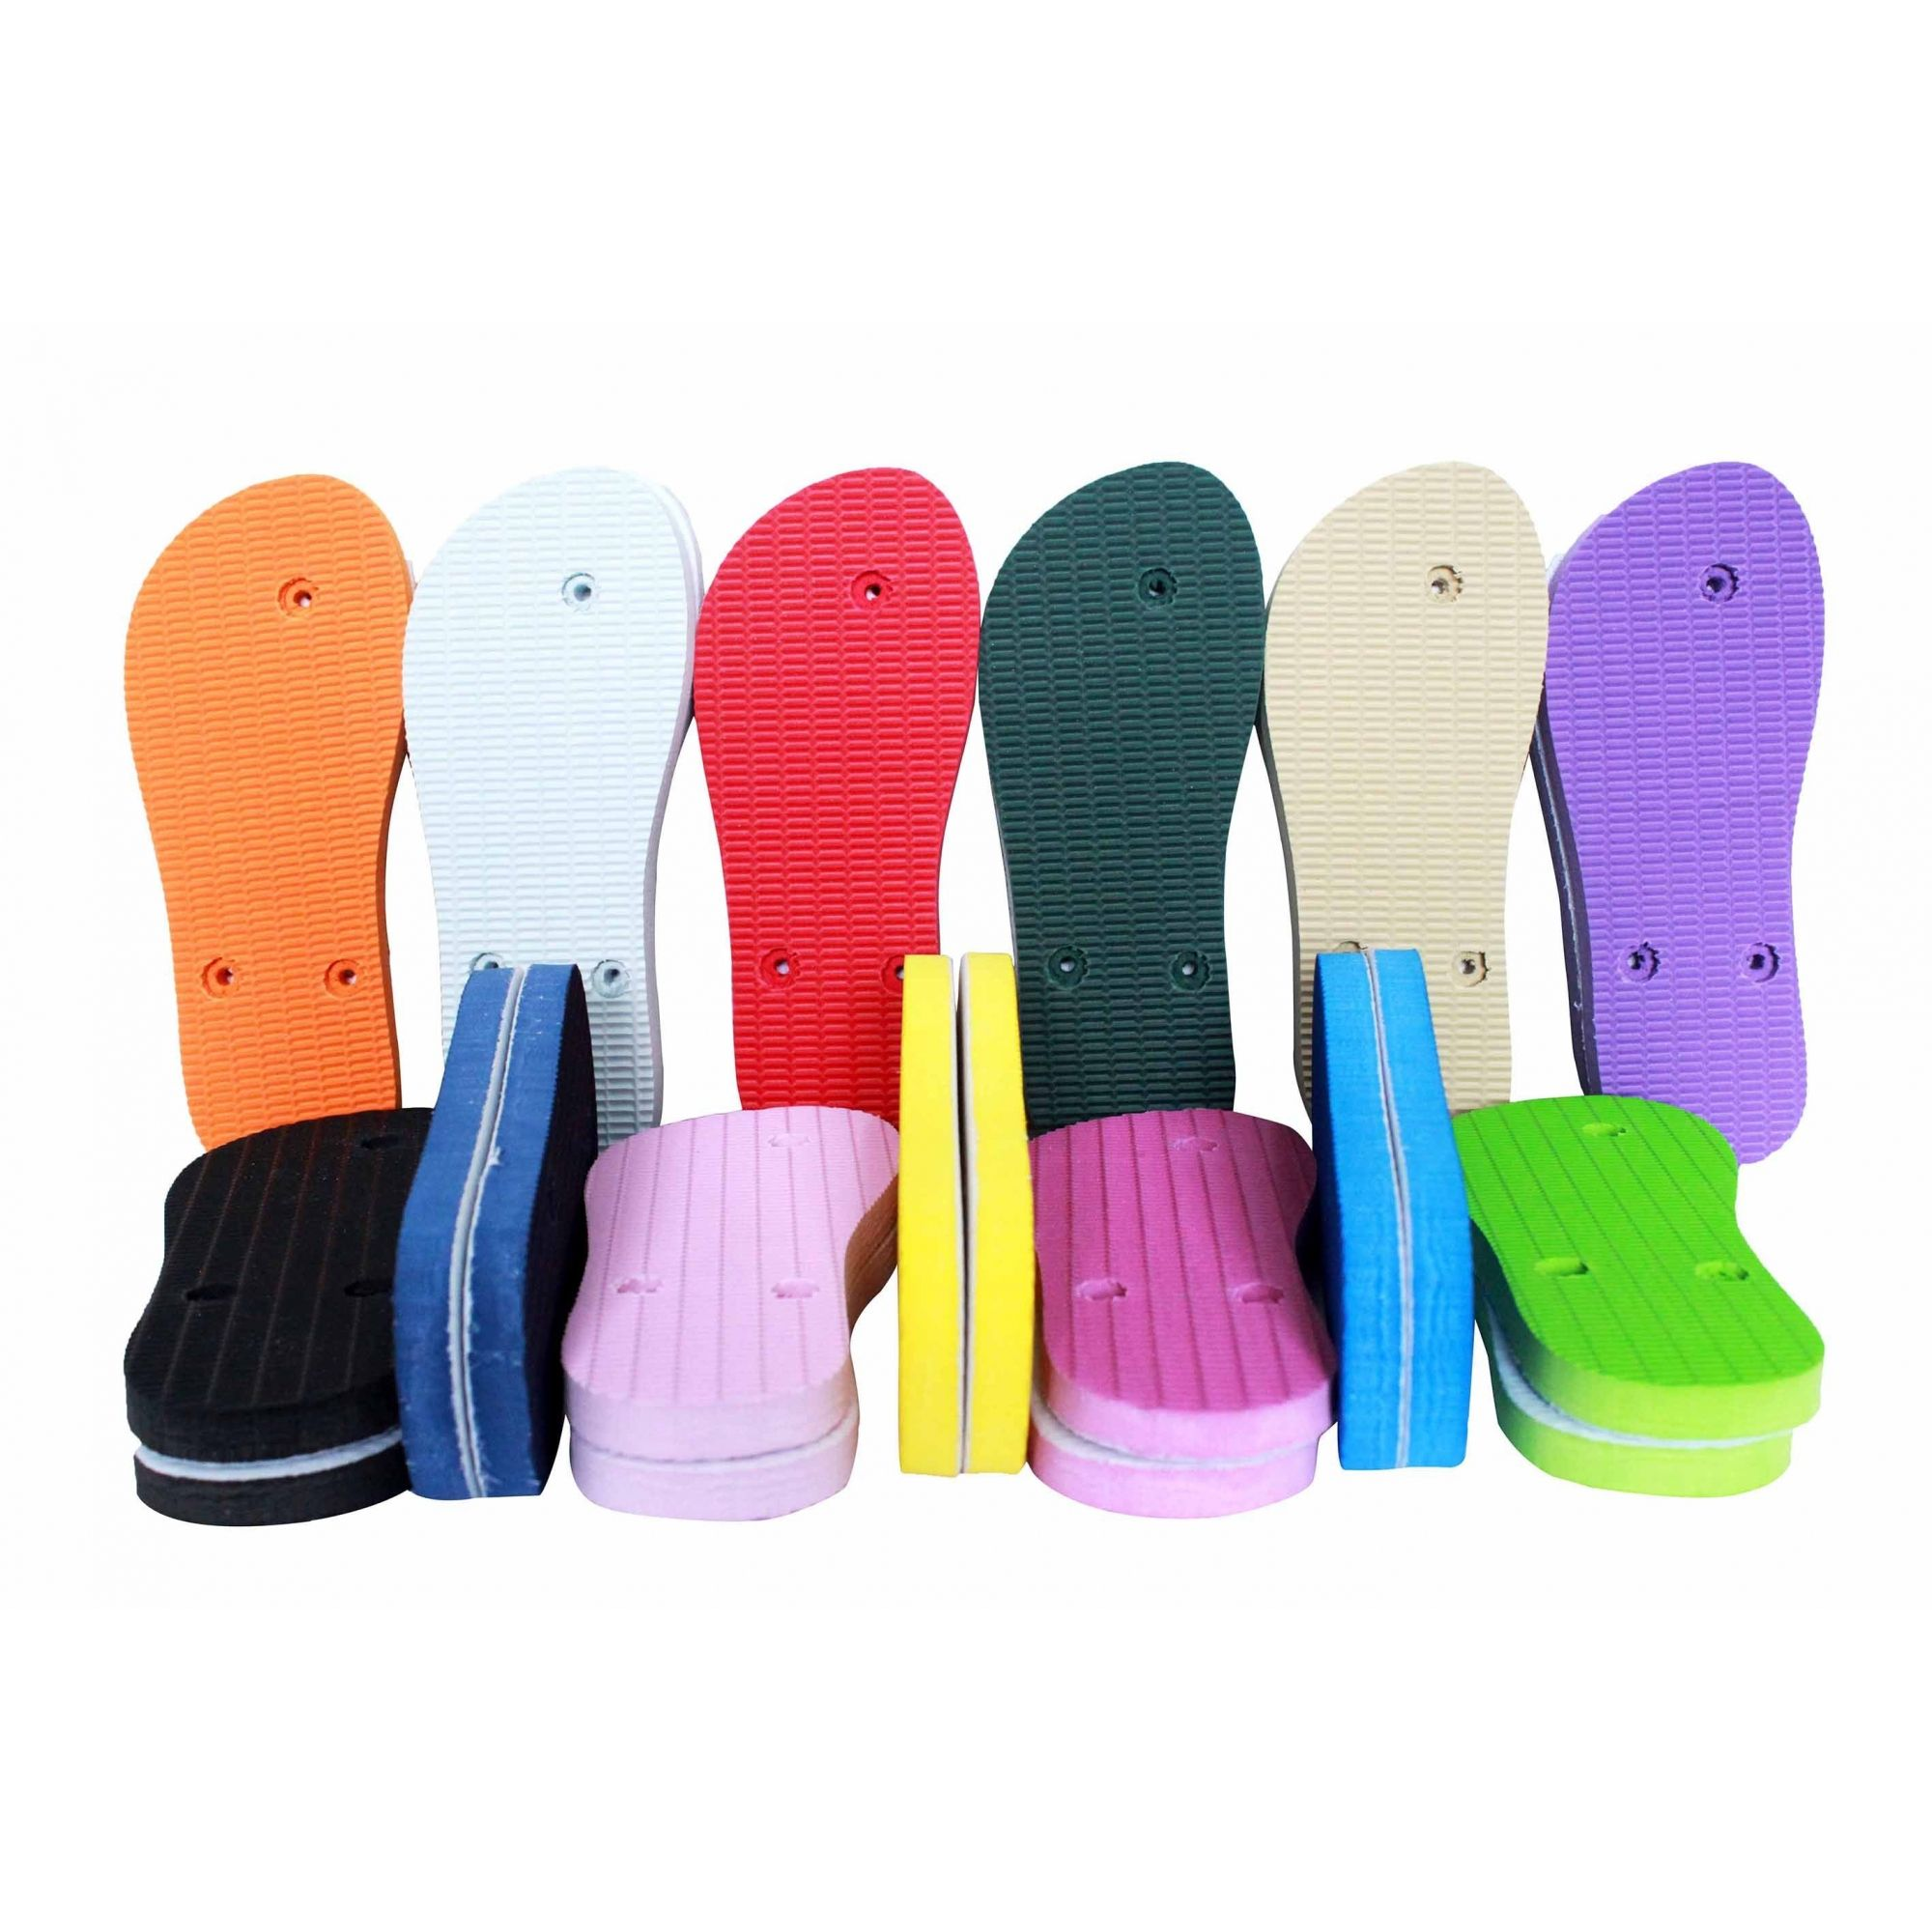 Chinelo Para Sublimação Kit Com 10 Pares Adulto